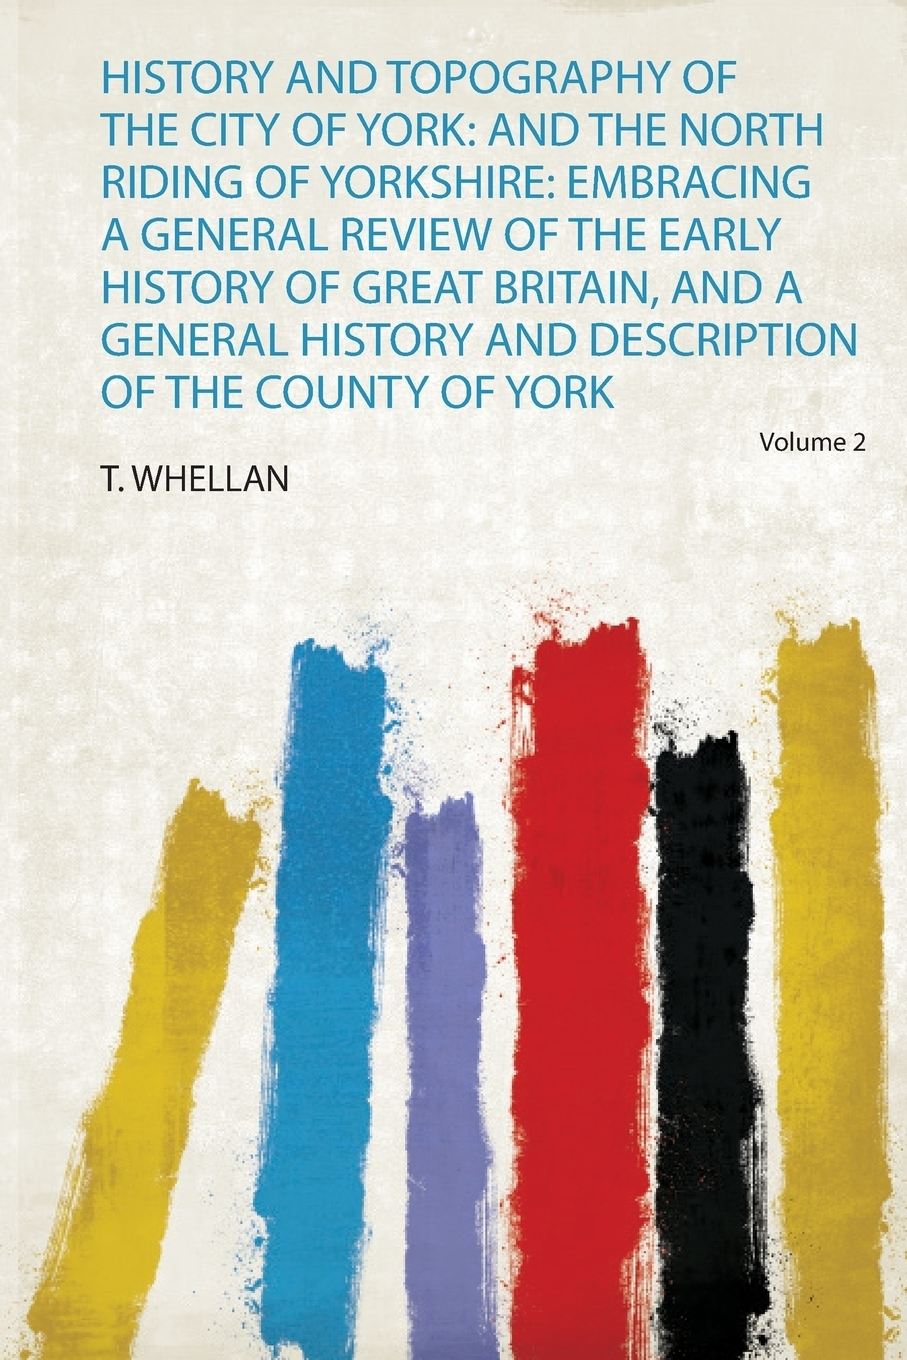 History and Topography of the City of York. and the North Riding of Yorkshire: Embracing a General Review of the Early History of Great Britain, and a General History and Description of the County of York hegel the end of history and the future